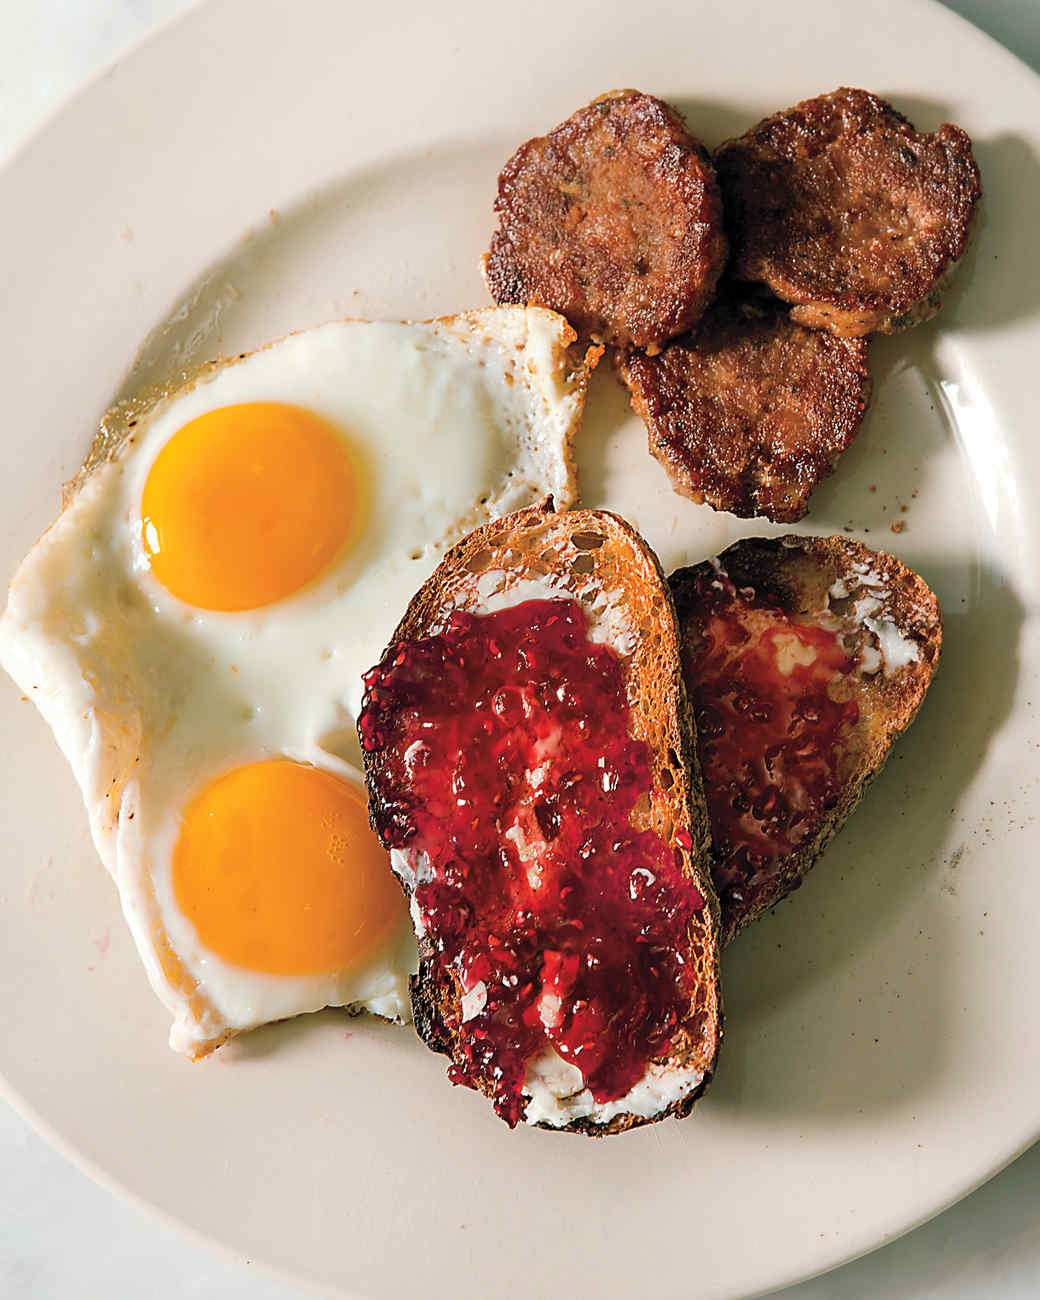 Fried eggs with sausage: how to vary a dish